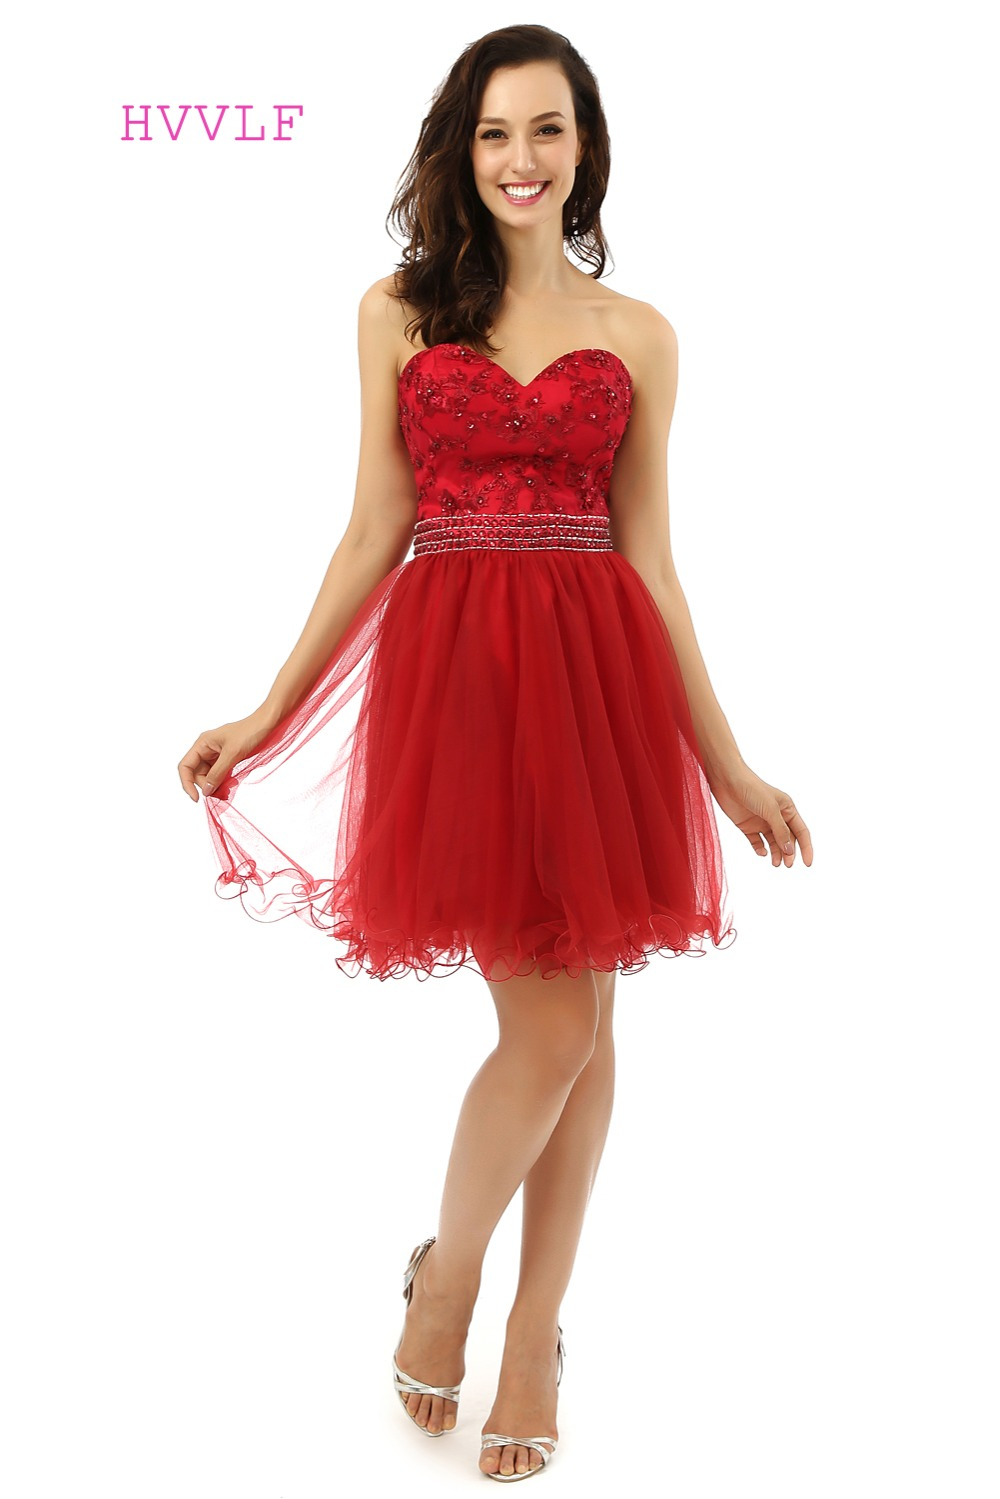 Red Homecoming Dresses A-line Sweetheart Beaded Appliques Lace Short Mini Sparkly Cocktail Dresses 2019